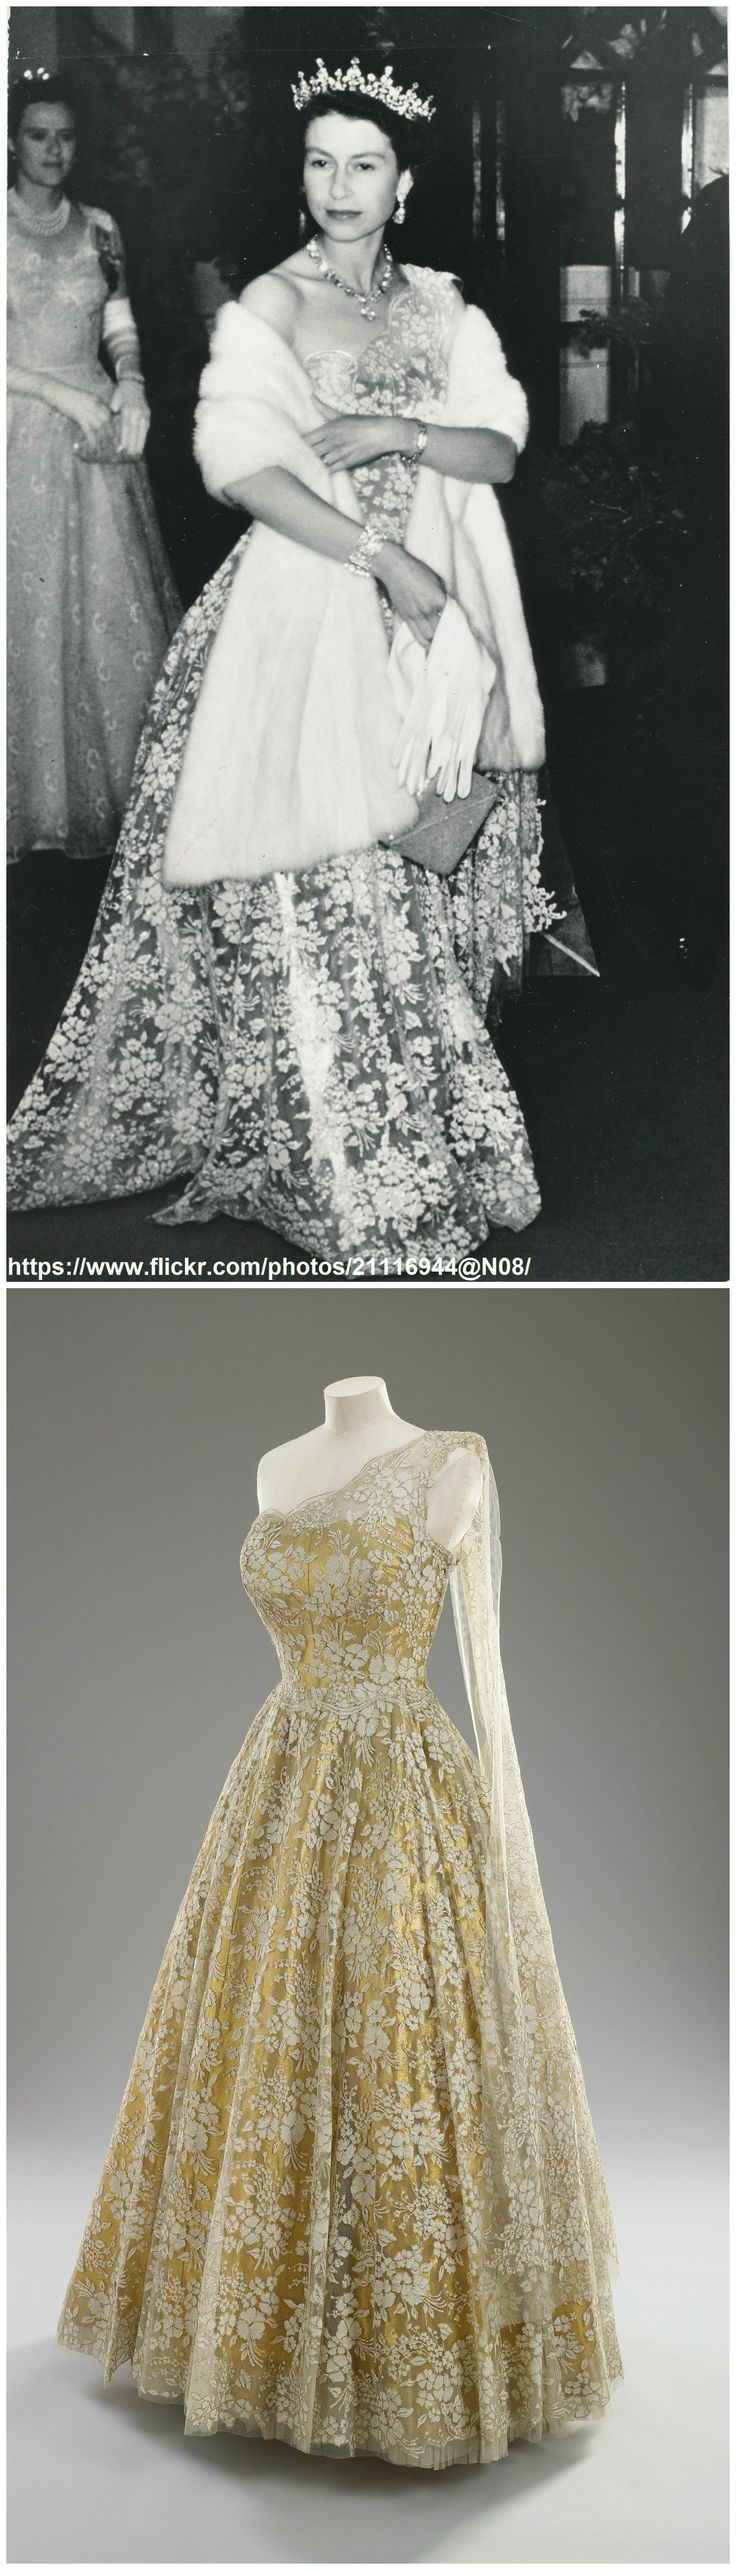 Above: Queen Elizabeth II arrives at Wellington Town Hall (New Zealand) for Investiture, January 1954. Photo via romanbenedikhanson on Flickr. Below: Evening gown,  by Sir Norman Hartnell, c. 1953-54. Gold lamé and lace. Worn by Queen Elizabeth II during her state visit to New Zealand in 1954. Royal Collection Trust/All Rights Reserved. CLICK FOR LARGER IMAGES.